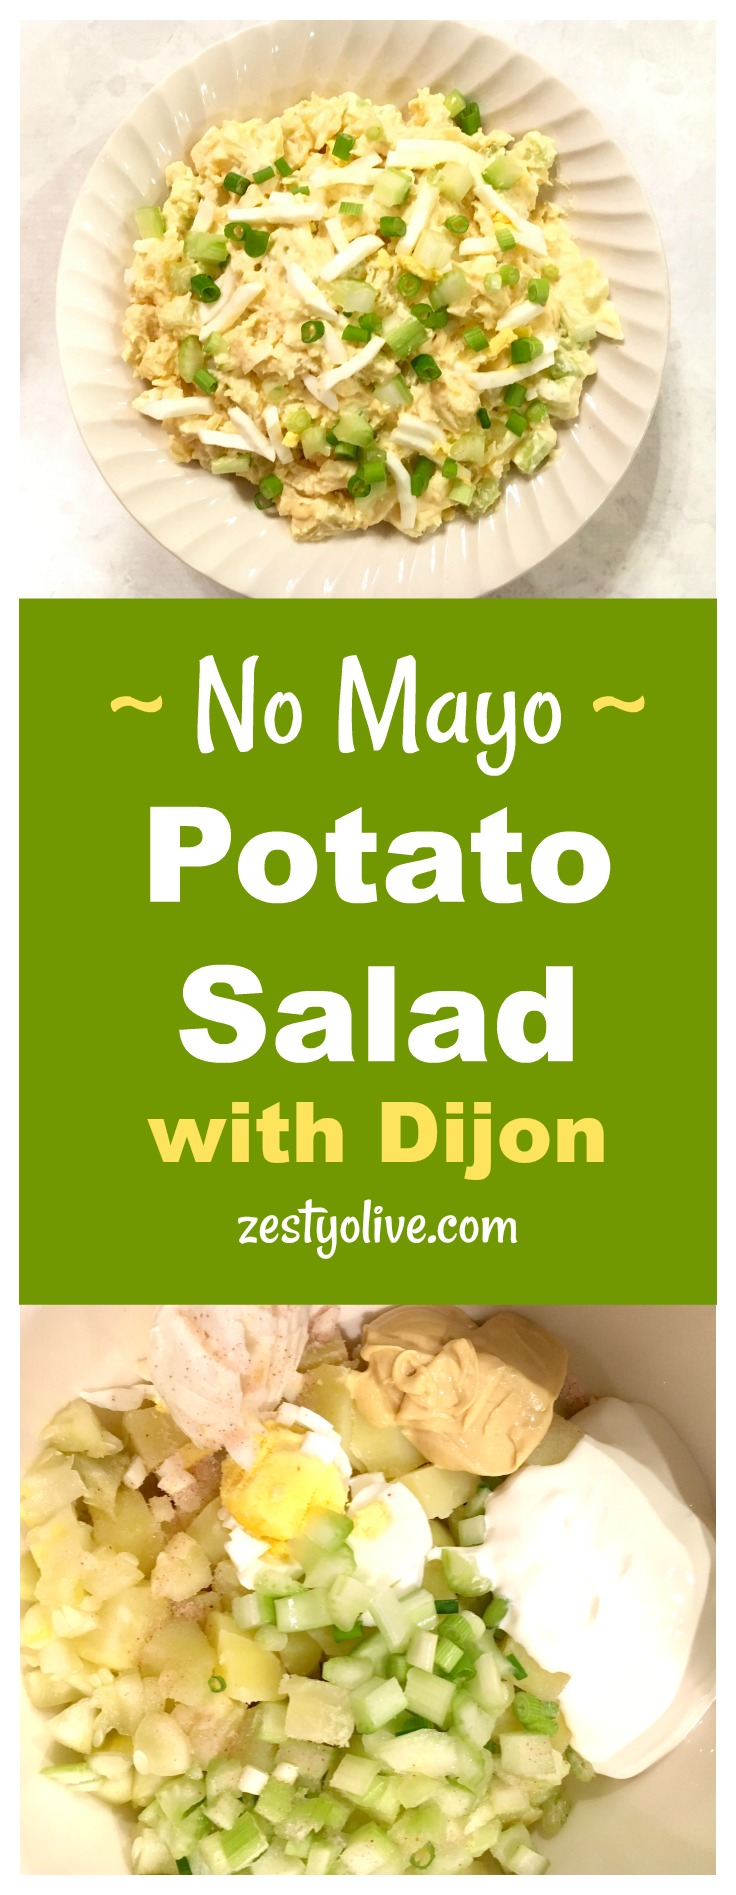 This Easy No Mayo Potato Salad Recipe is will become a favorite at your next picnic, BBQ or potluck. This potato salad is elevated by the spicy addition of Dijon mustard. Sour cream replaces the mayonnaise and the addition of egg, celery, green onions and dill pickle make this a zesty potato salad worthy of your next gathering.